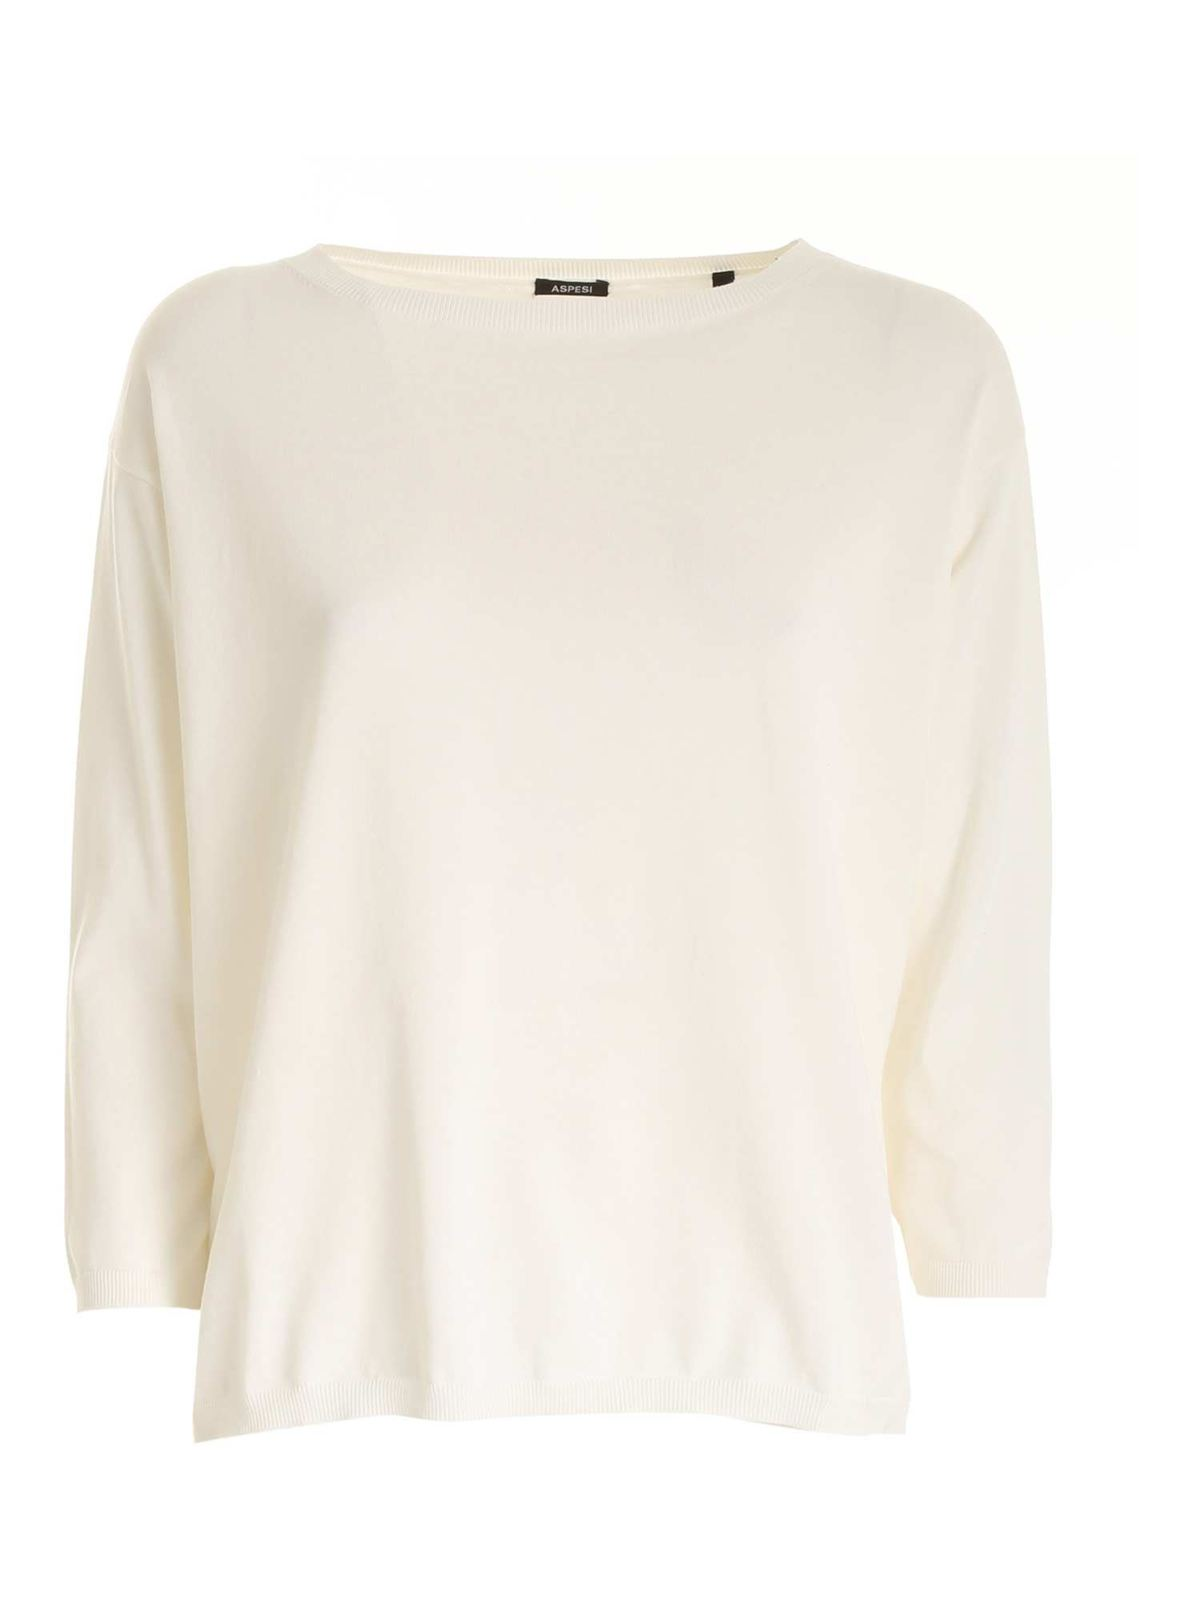 Aspesi BOXY SWEATER IN IVORY COLOR